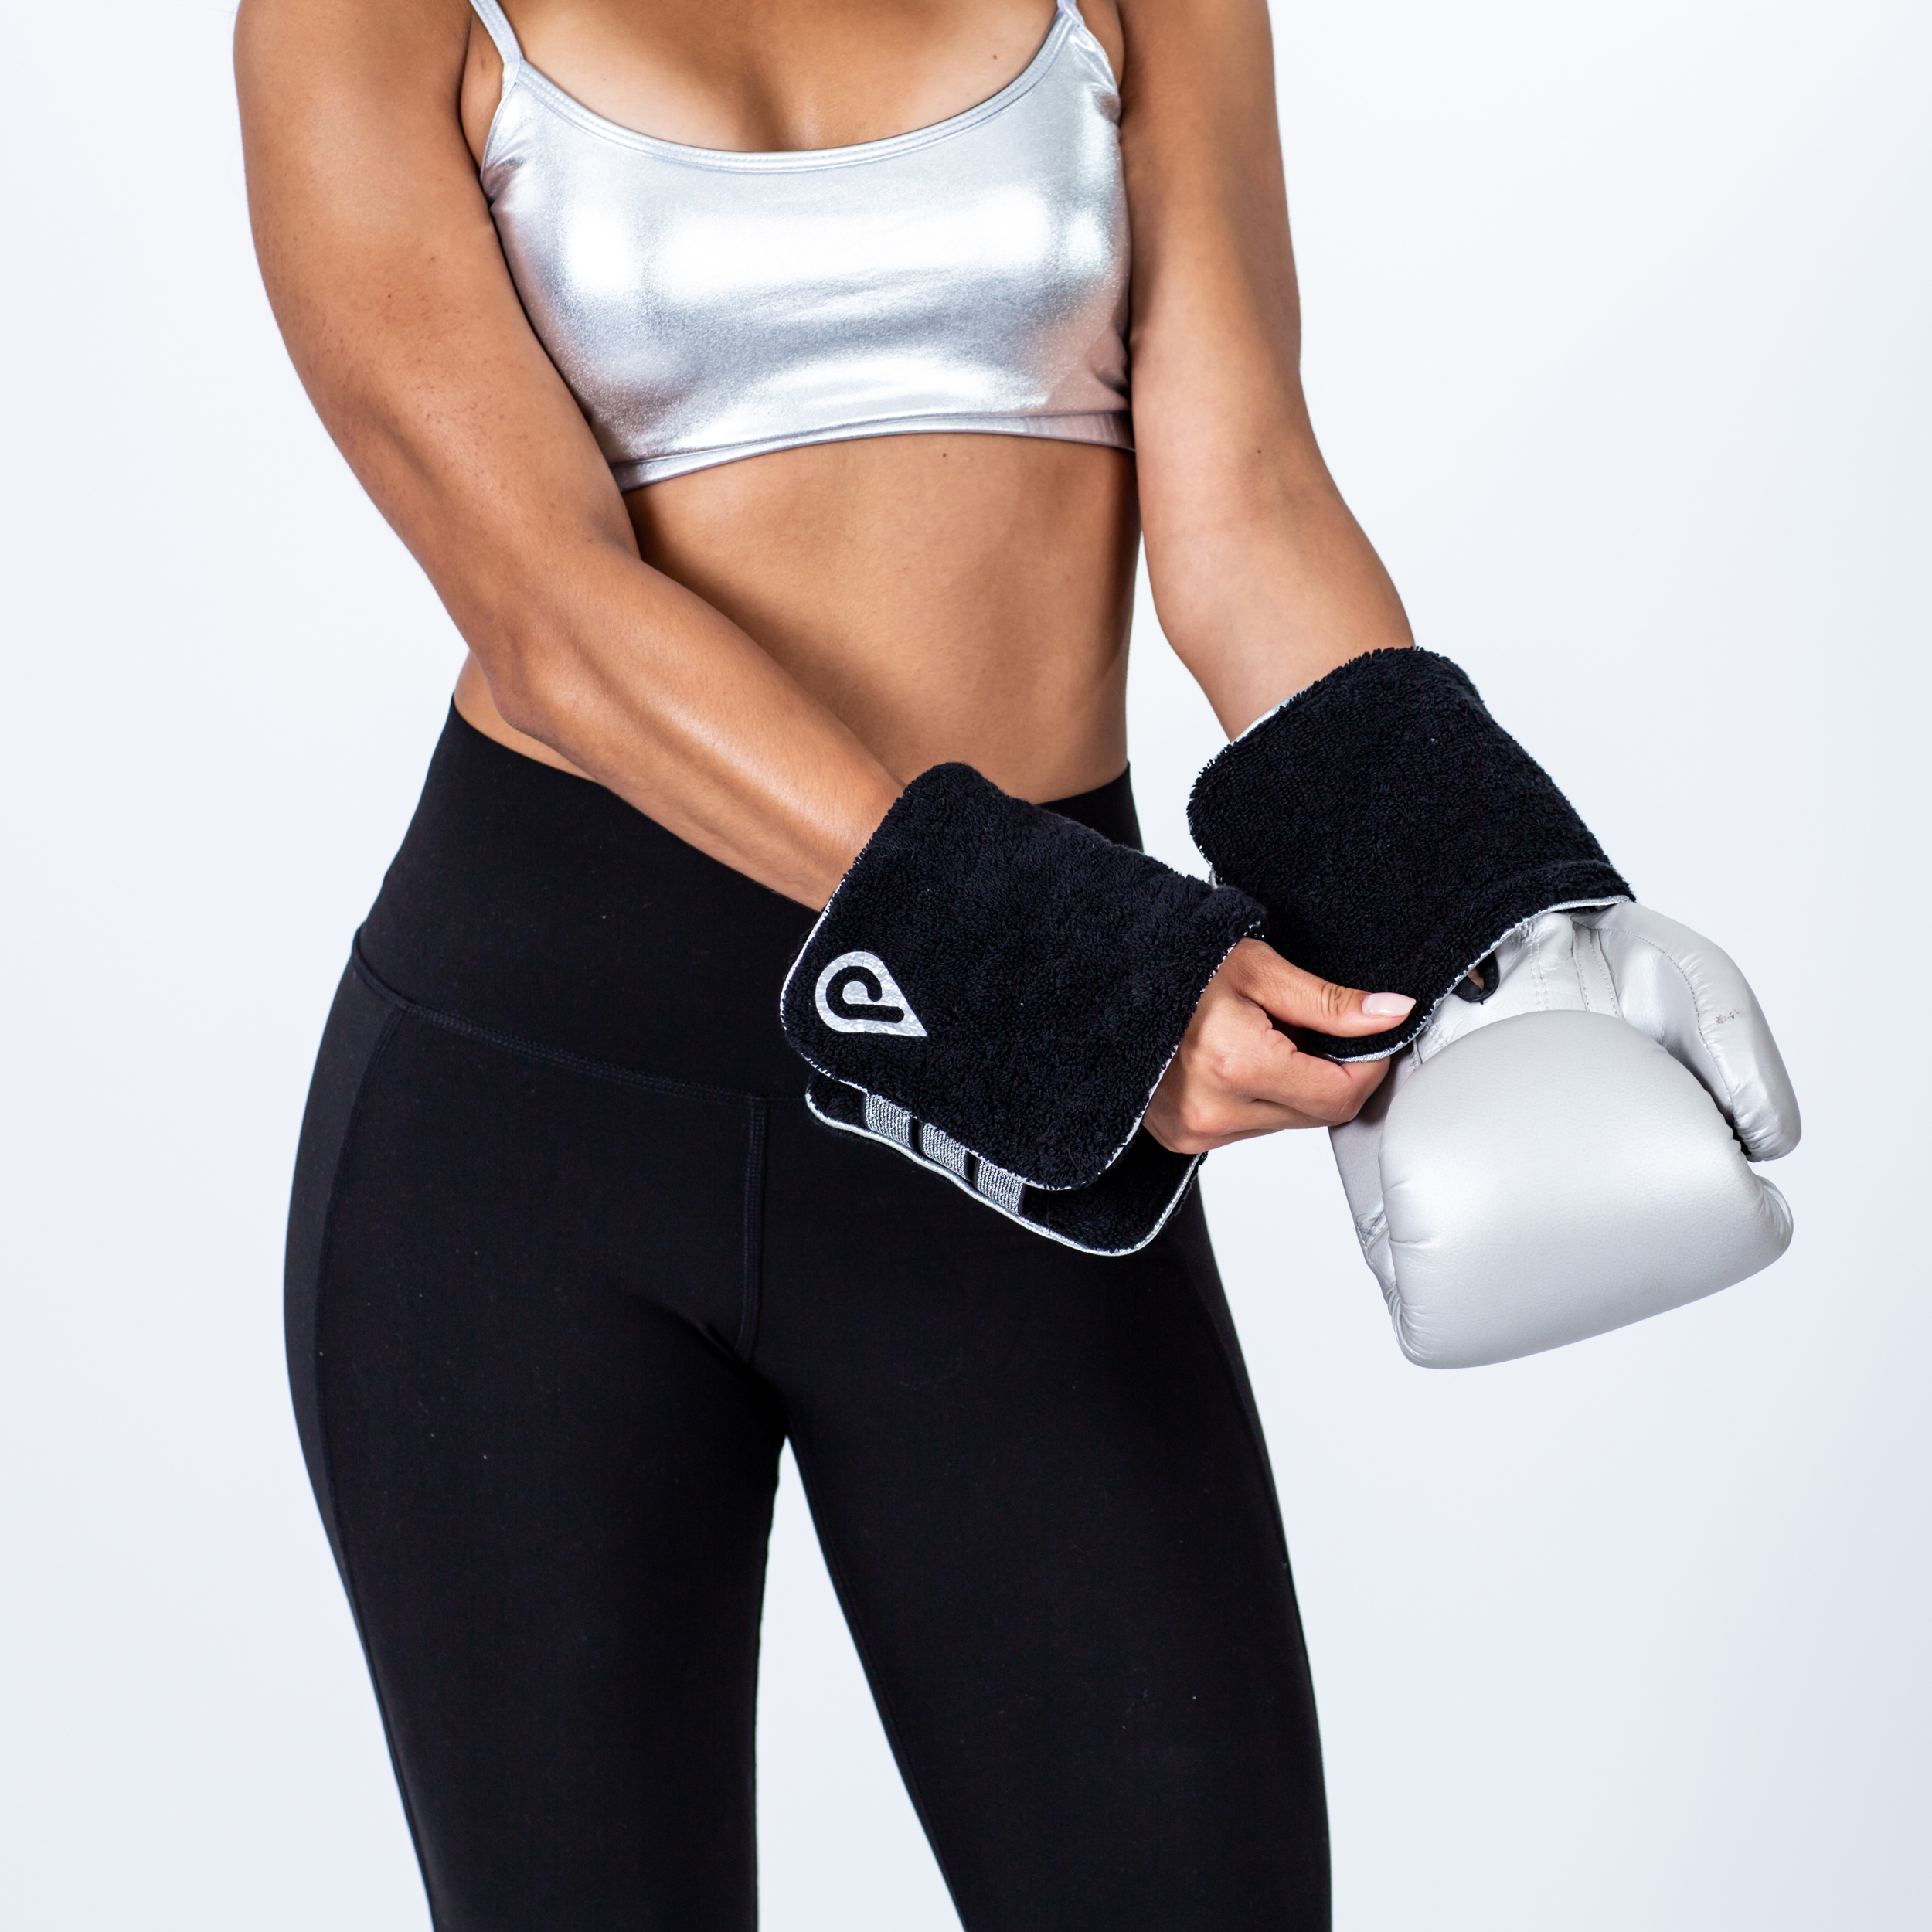 From a commercial photoshoot campaign for fitness accessories. The model is putting on a boxing glove accessory he company's logo.